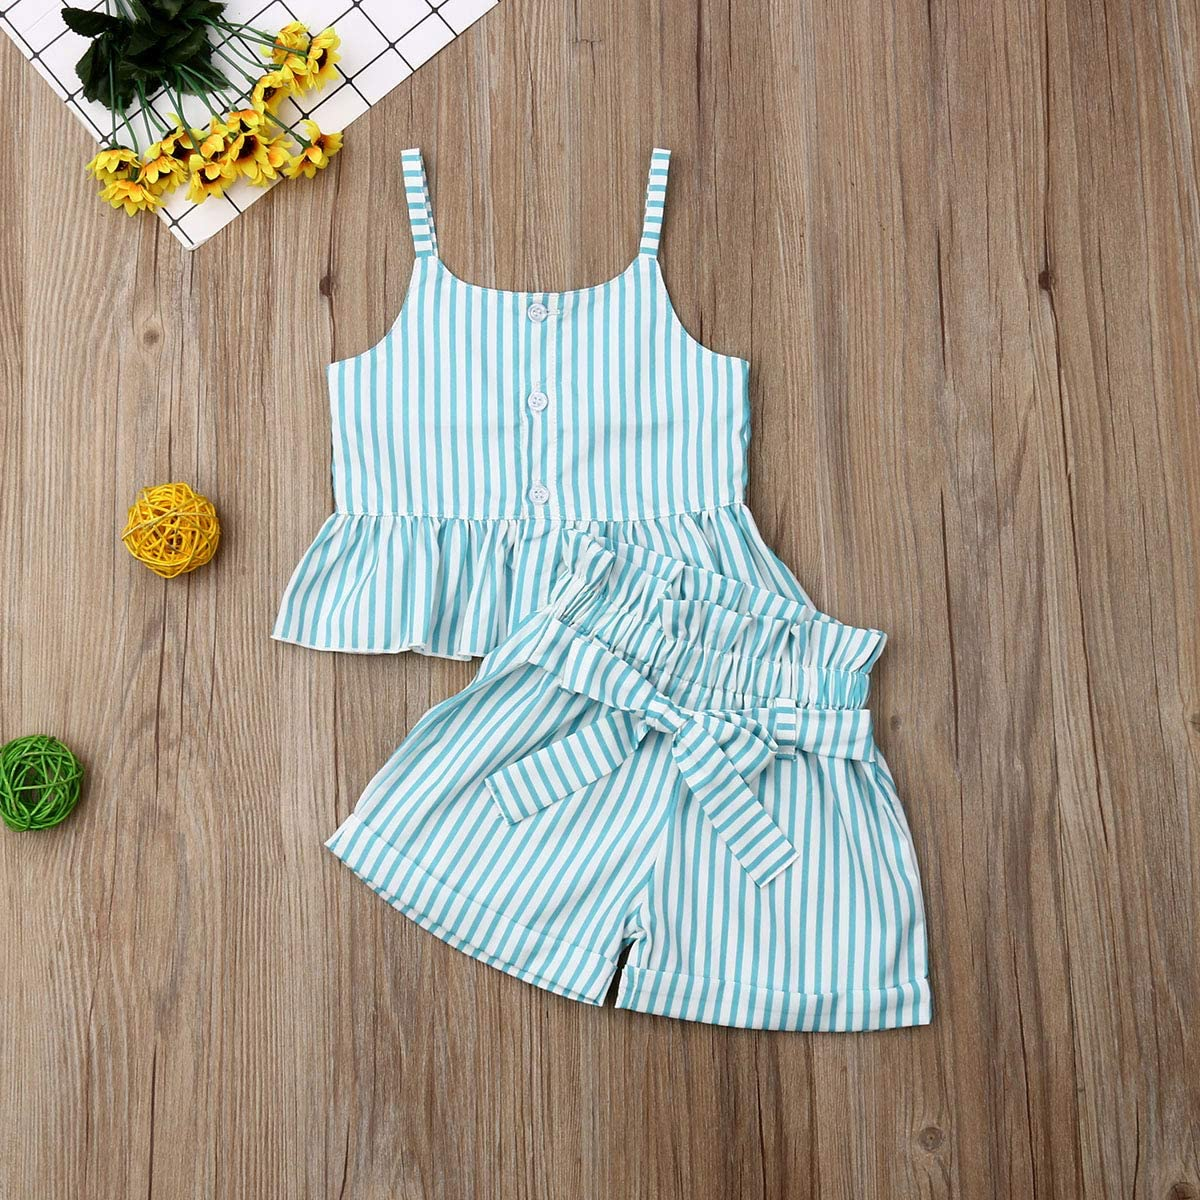 Infant Baby Girls Summer Outfits Halter Button Ruffled Camisole Tank Tops Bowknot Shorts Striped Casual Clothes Set 2Pcs